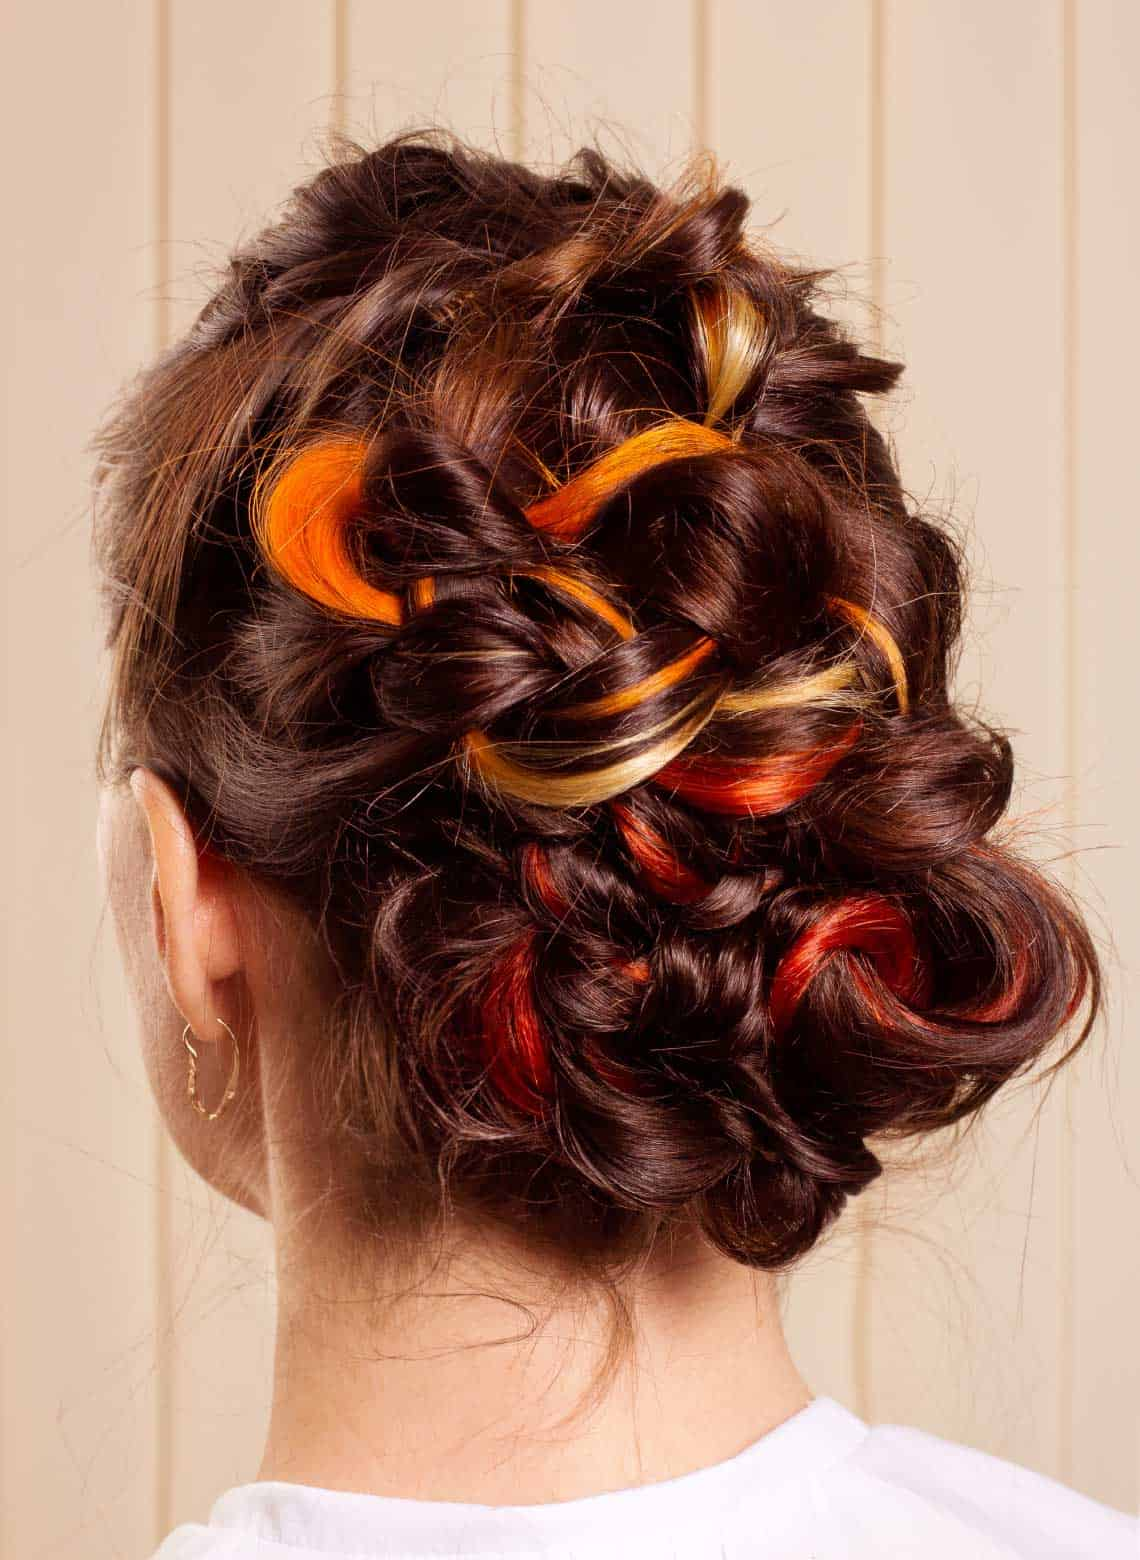 woman with curly updo